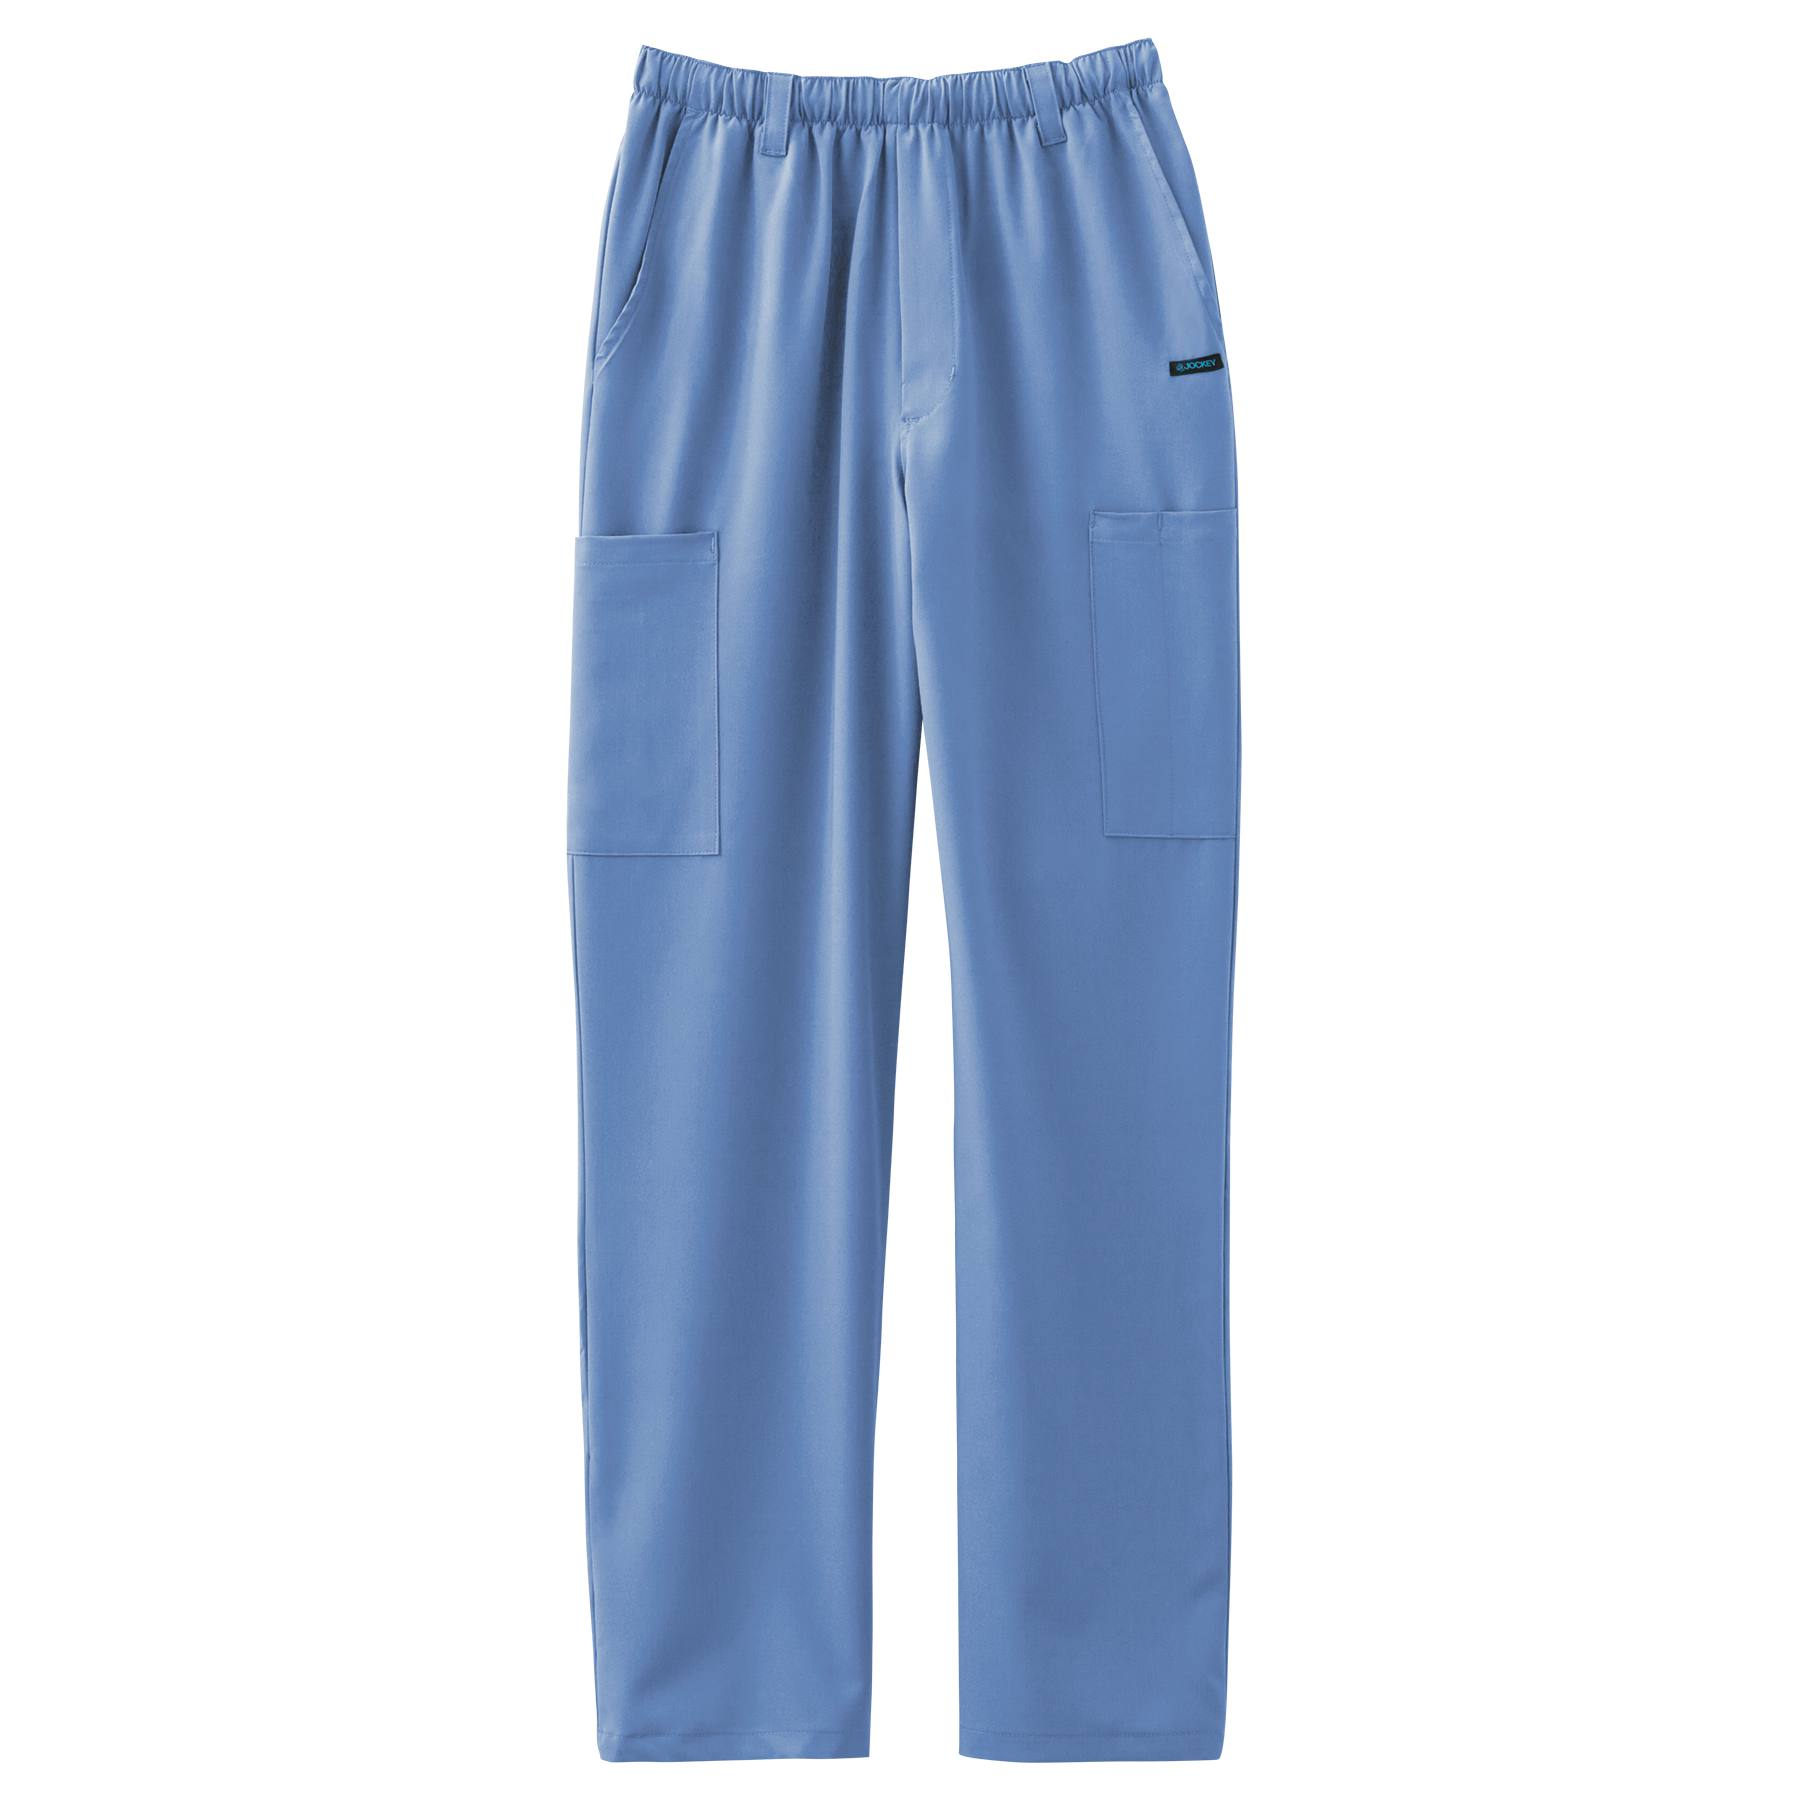 Jockey Men's Everything Pant-Jockey Scrubs